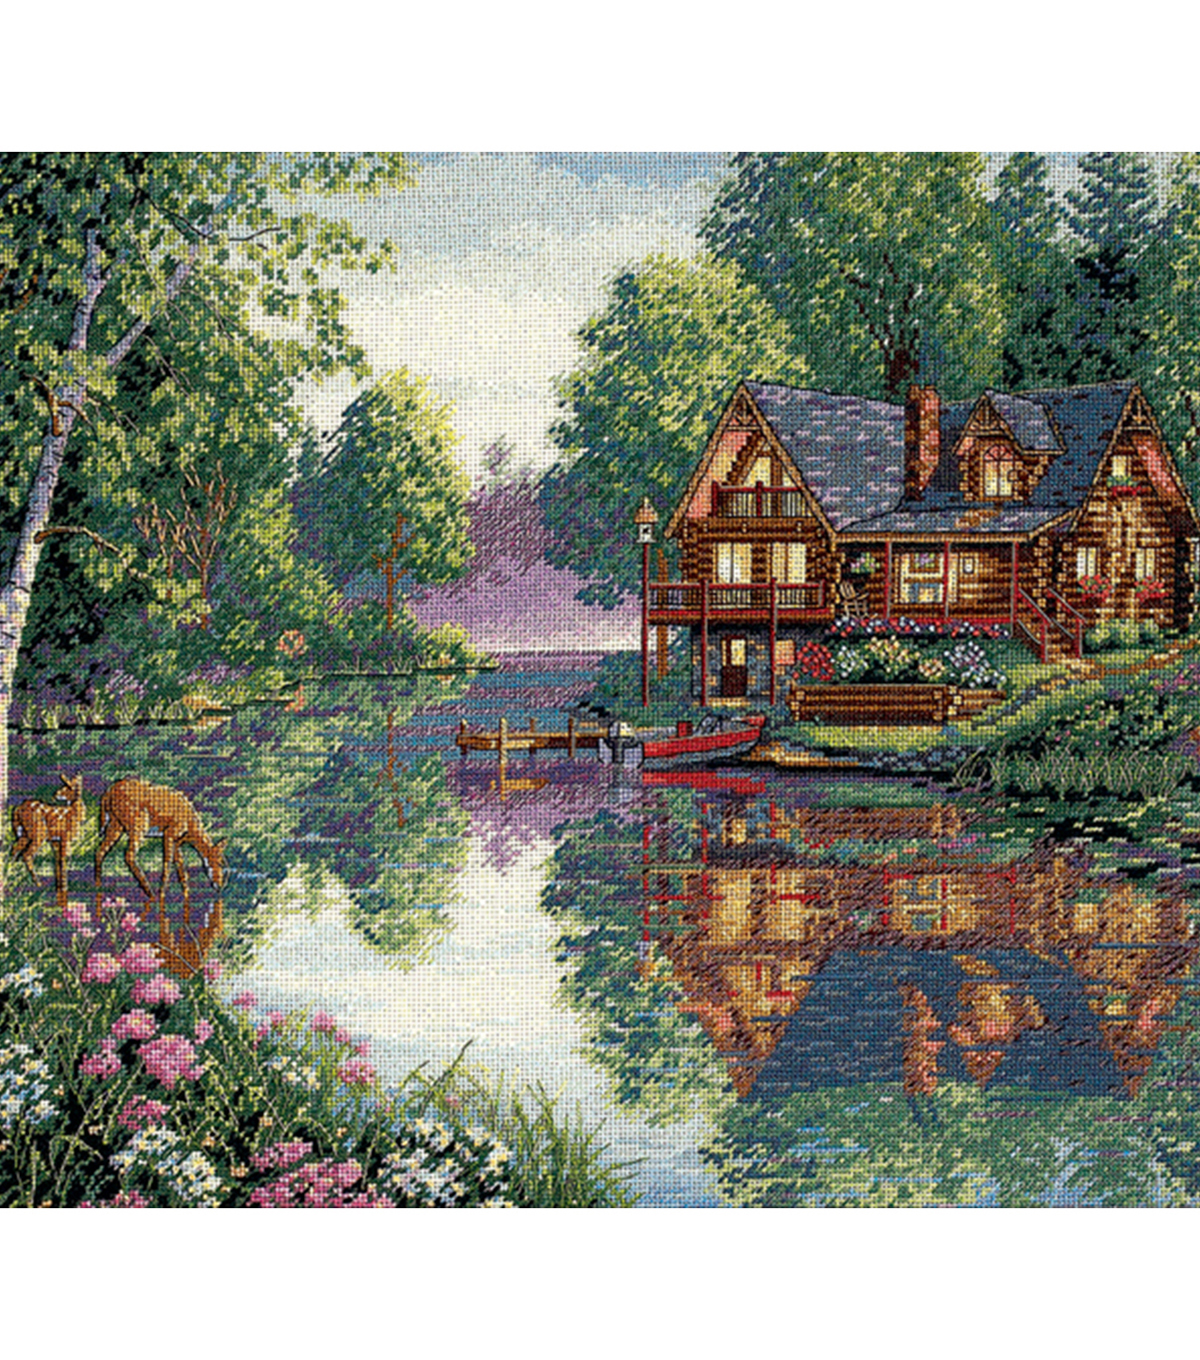 Gold Collection Cabin Fever Counted Cross Stitch Kit 18 Count